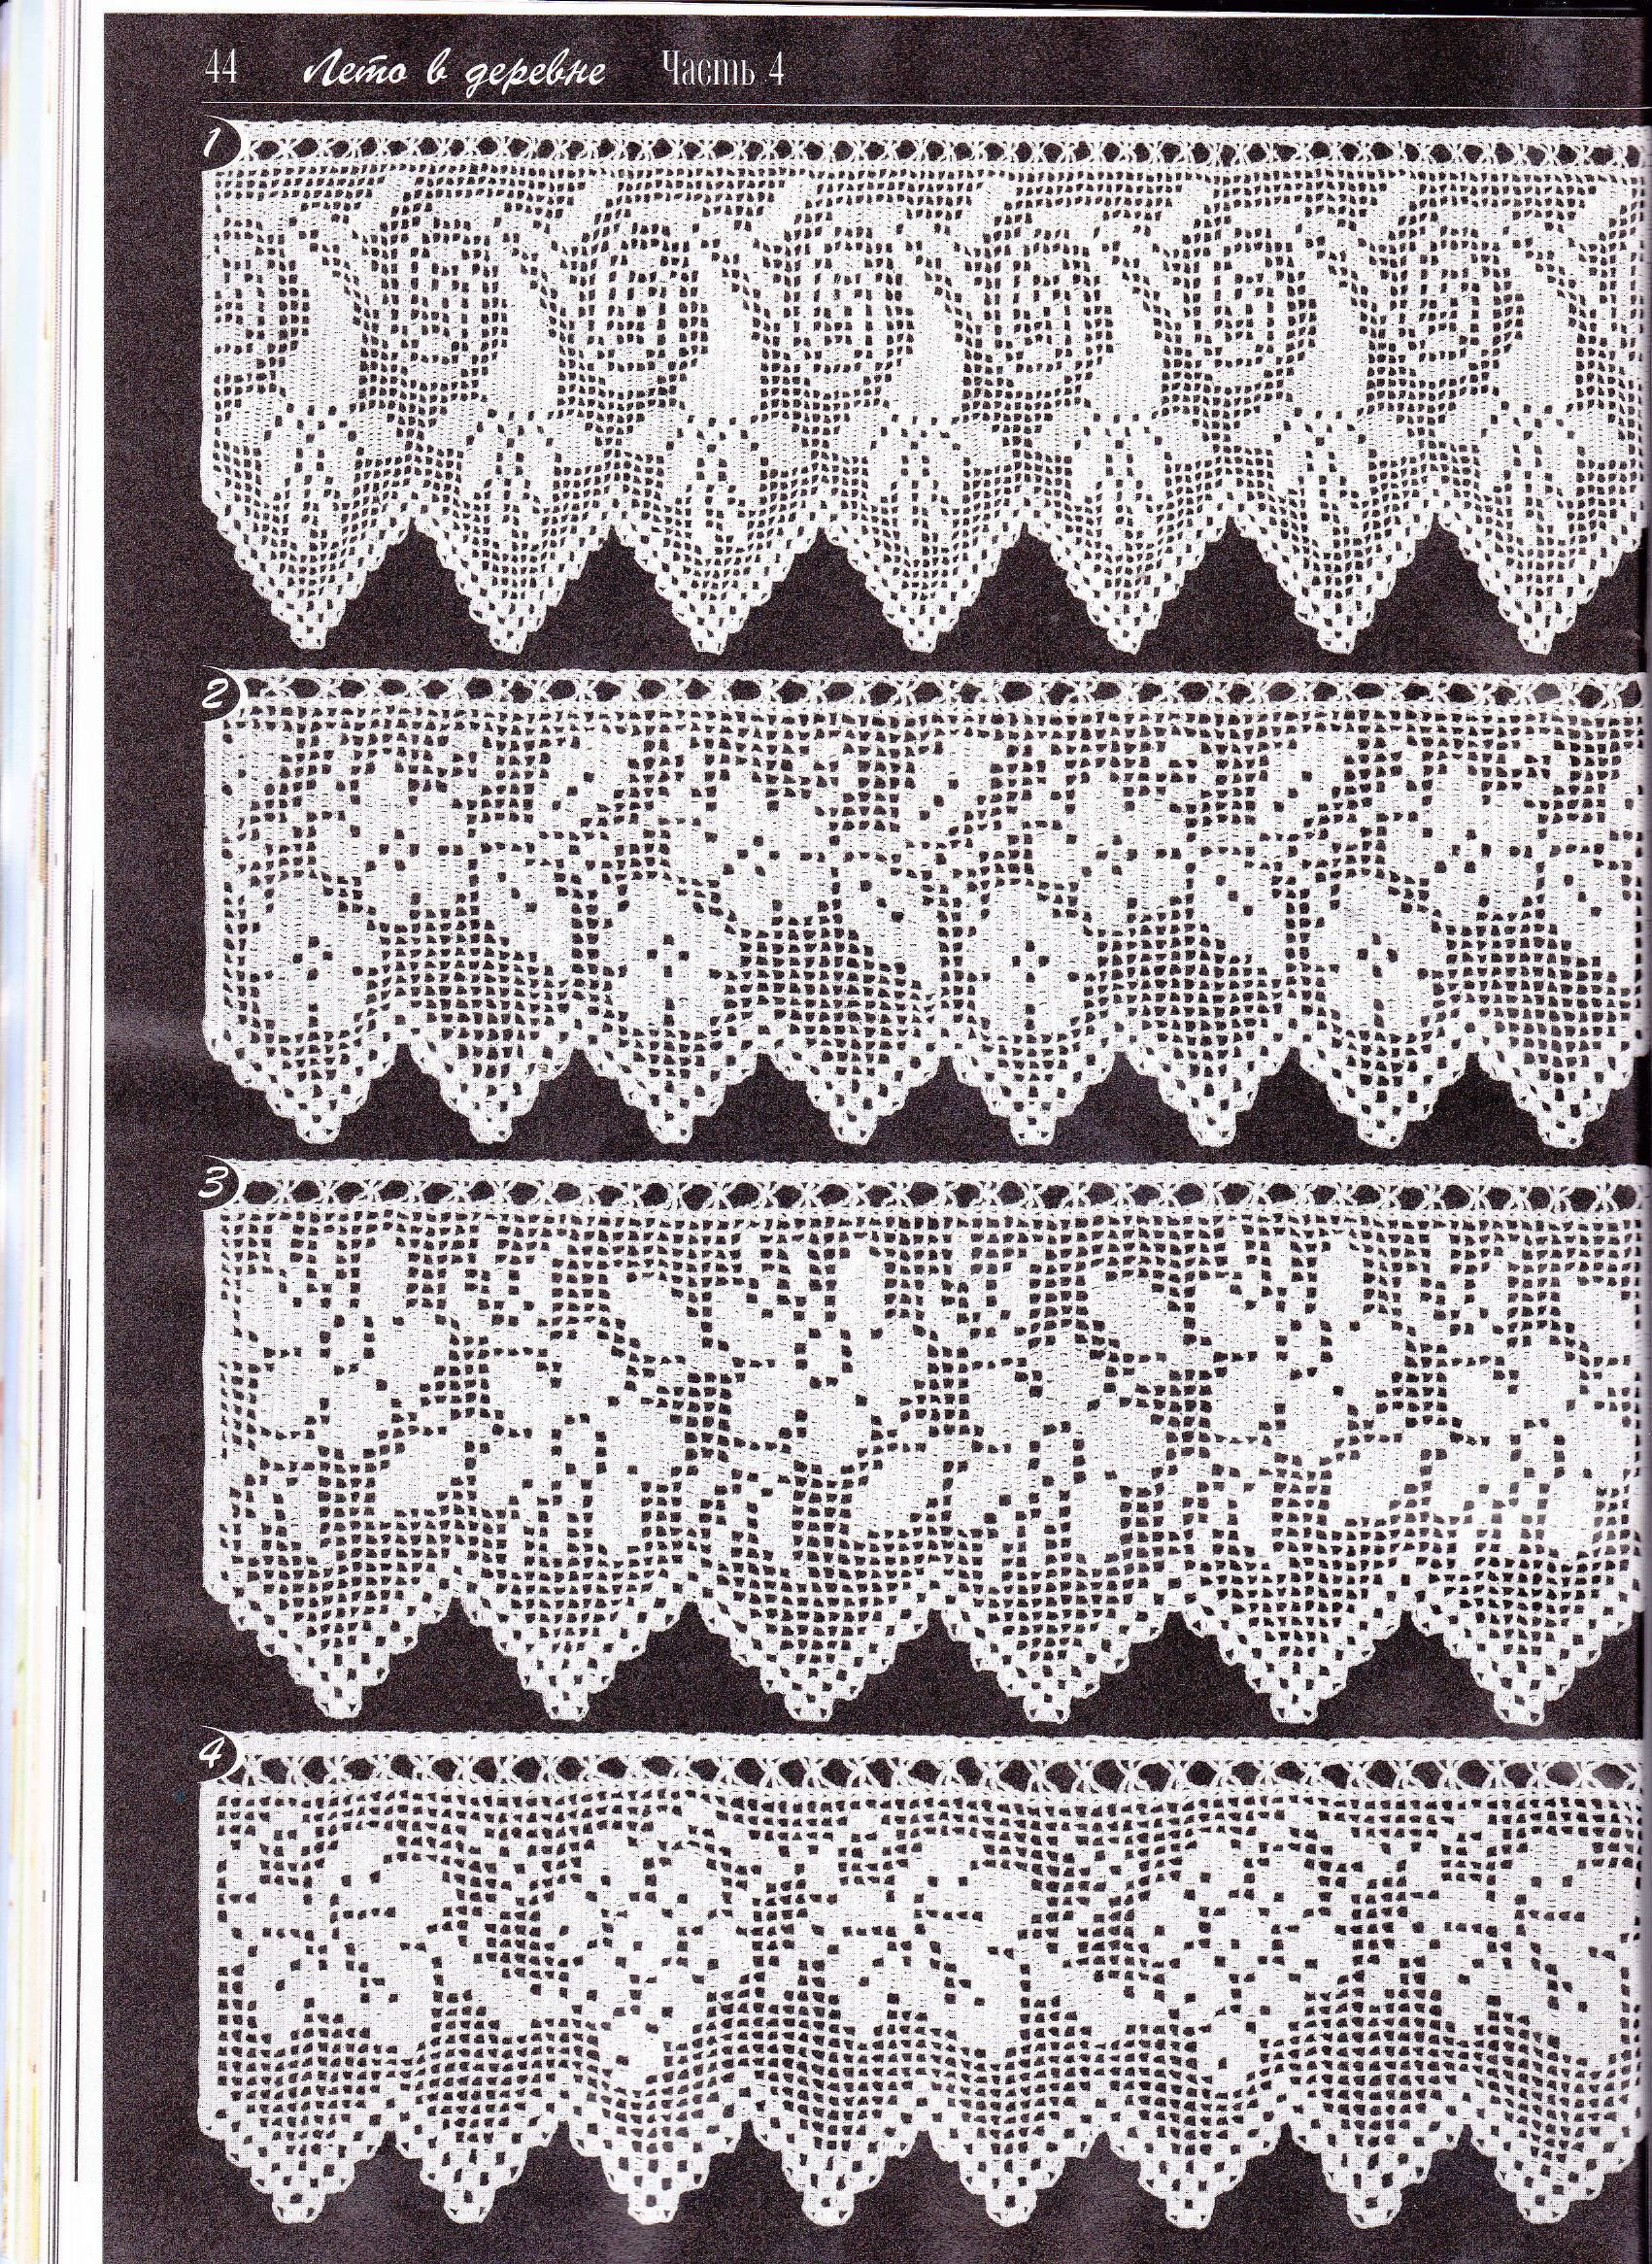 Duplet 138 p44. Four beautiful filet lace edgings with floral motifs ...